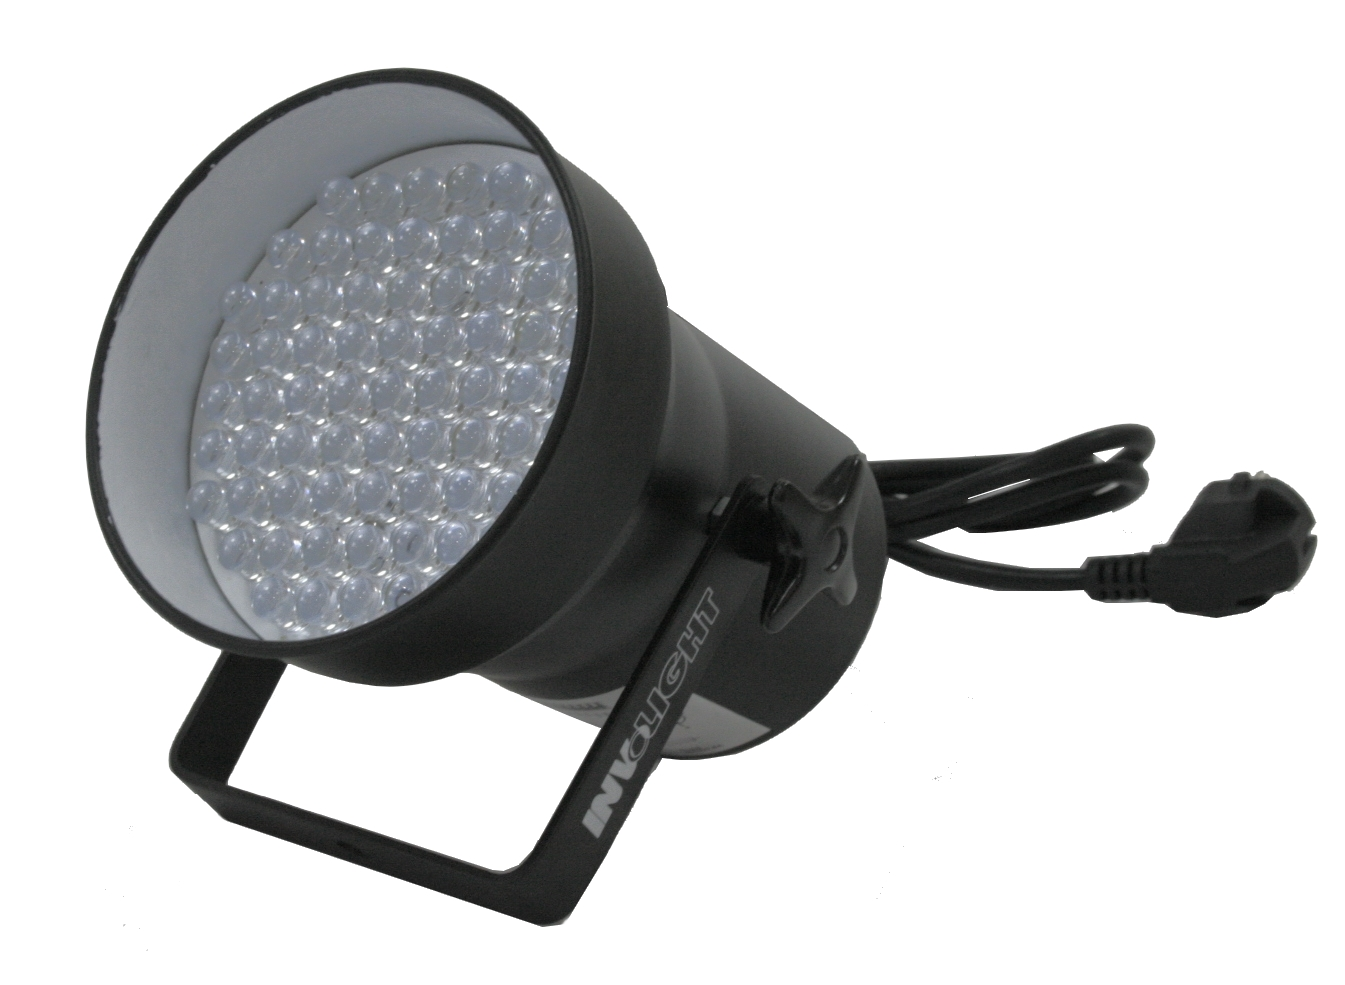 LED PAR INVOLIGHT LED Par36/BK